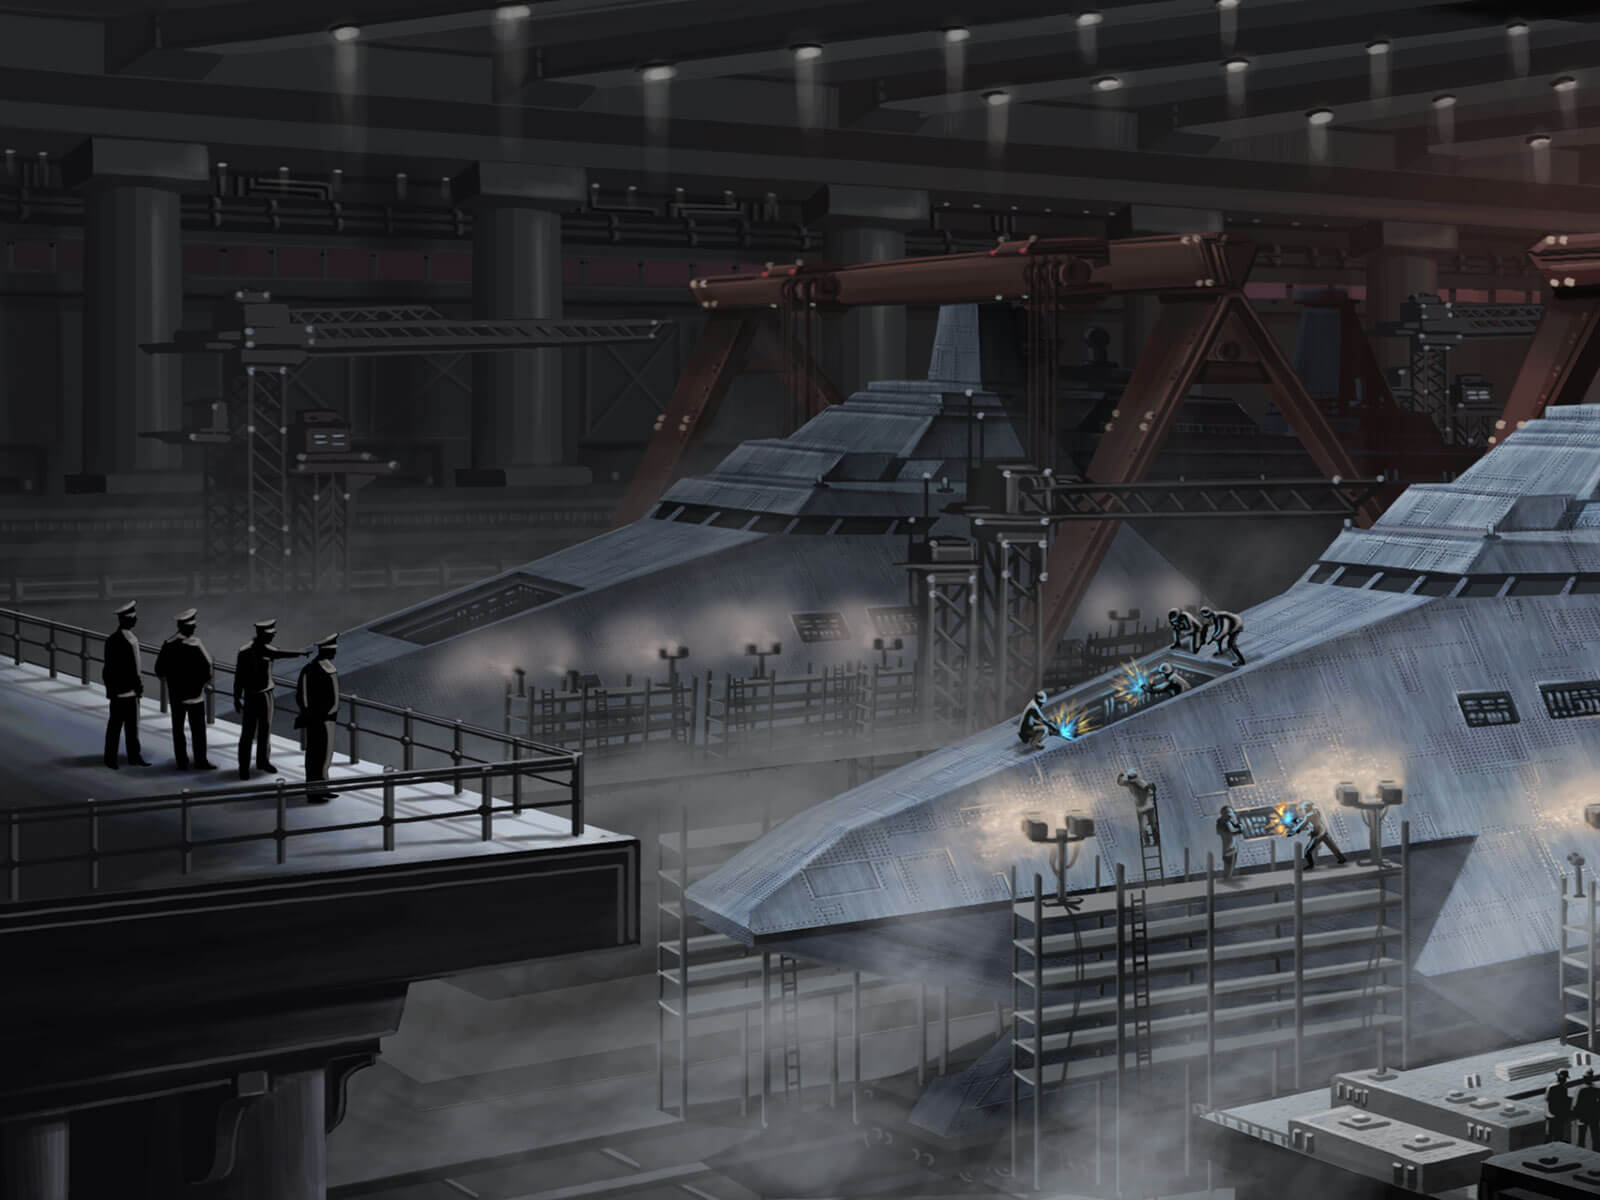 Futuristic destroyers in dry dock